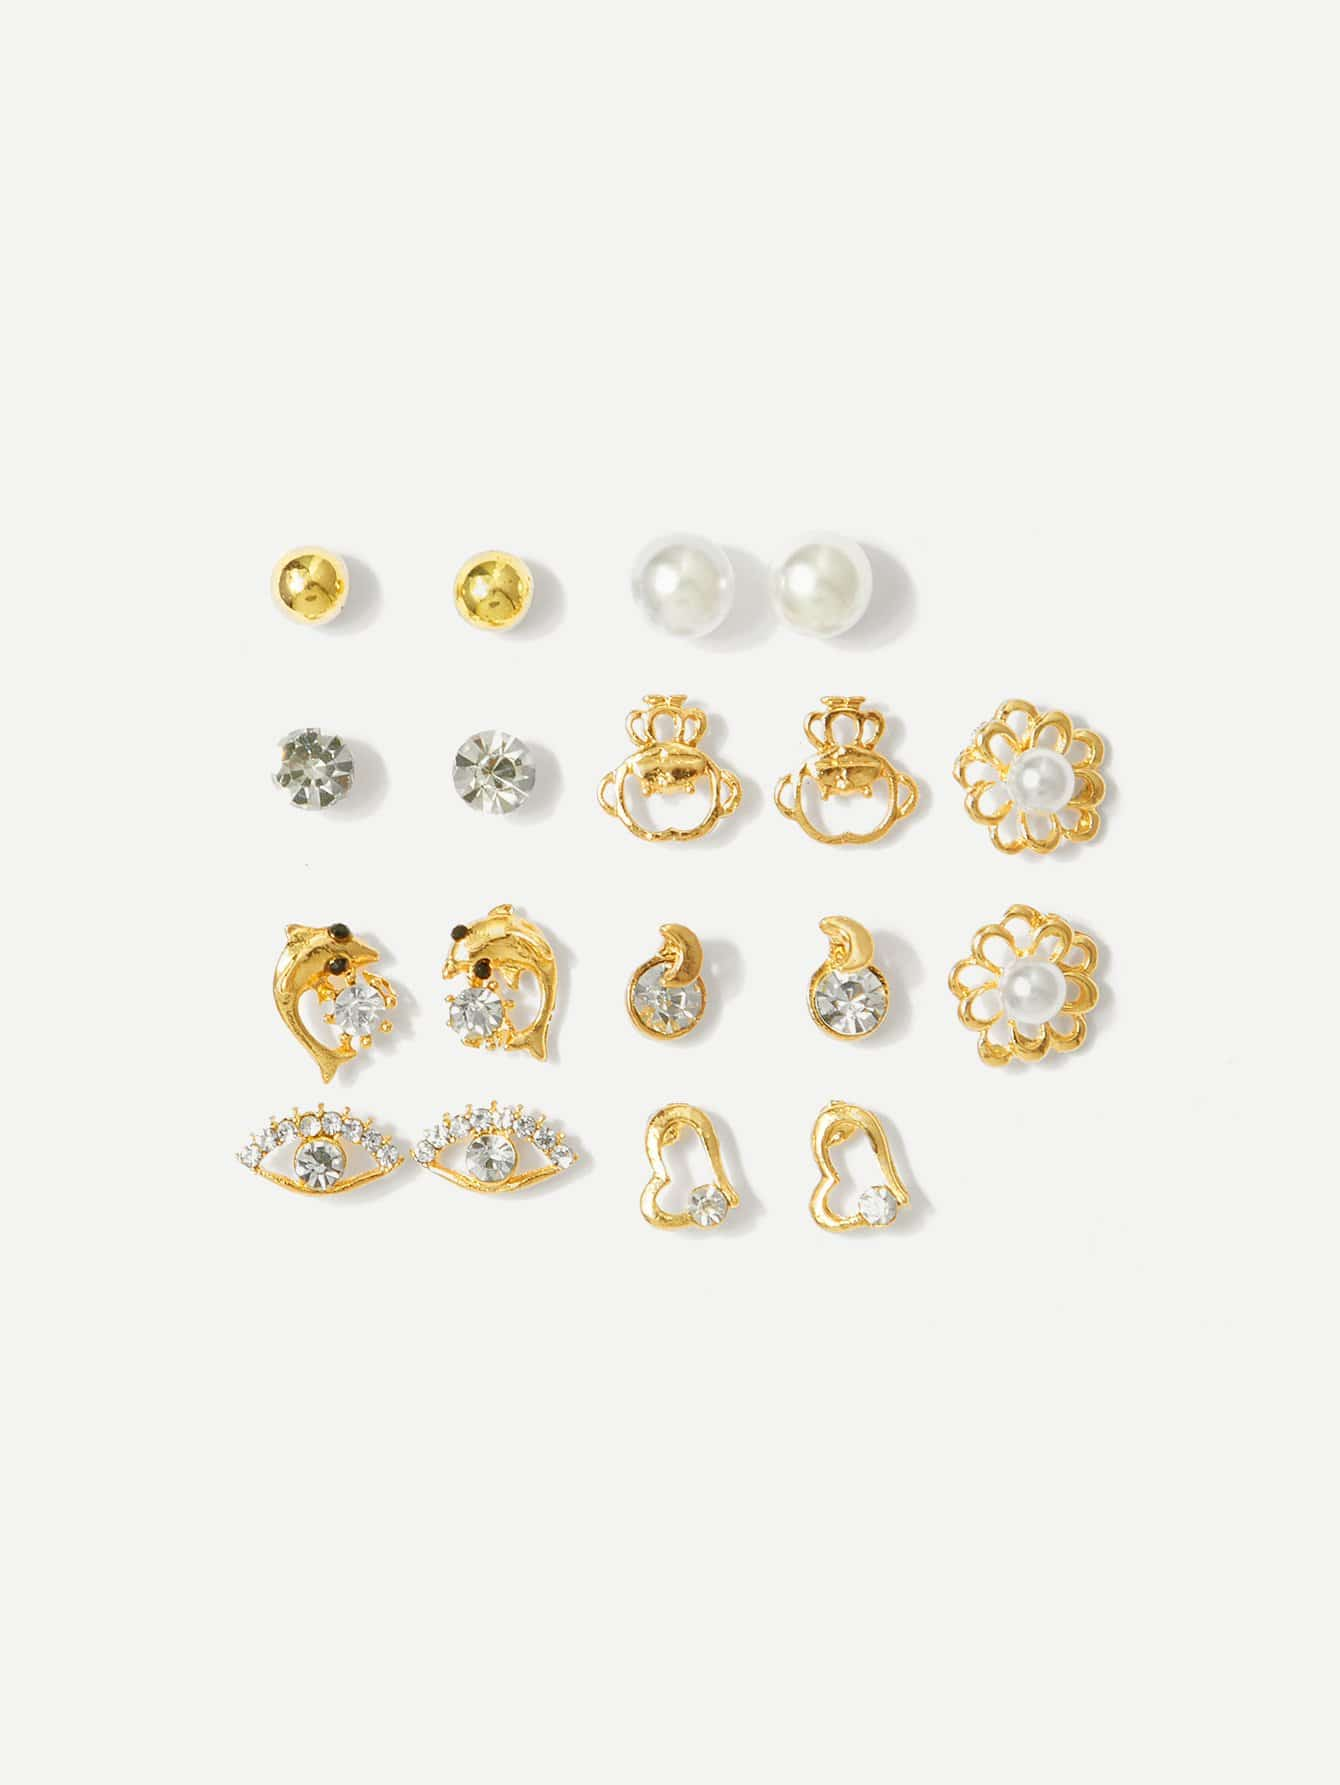 Golden With Pearl Dolphin & Heart Detail 9 Pairs Stud Earrings